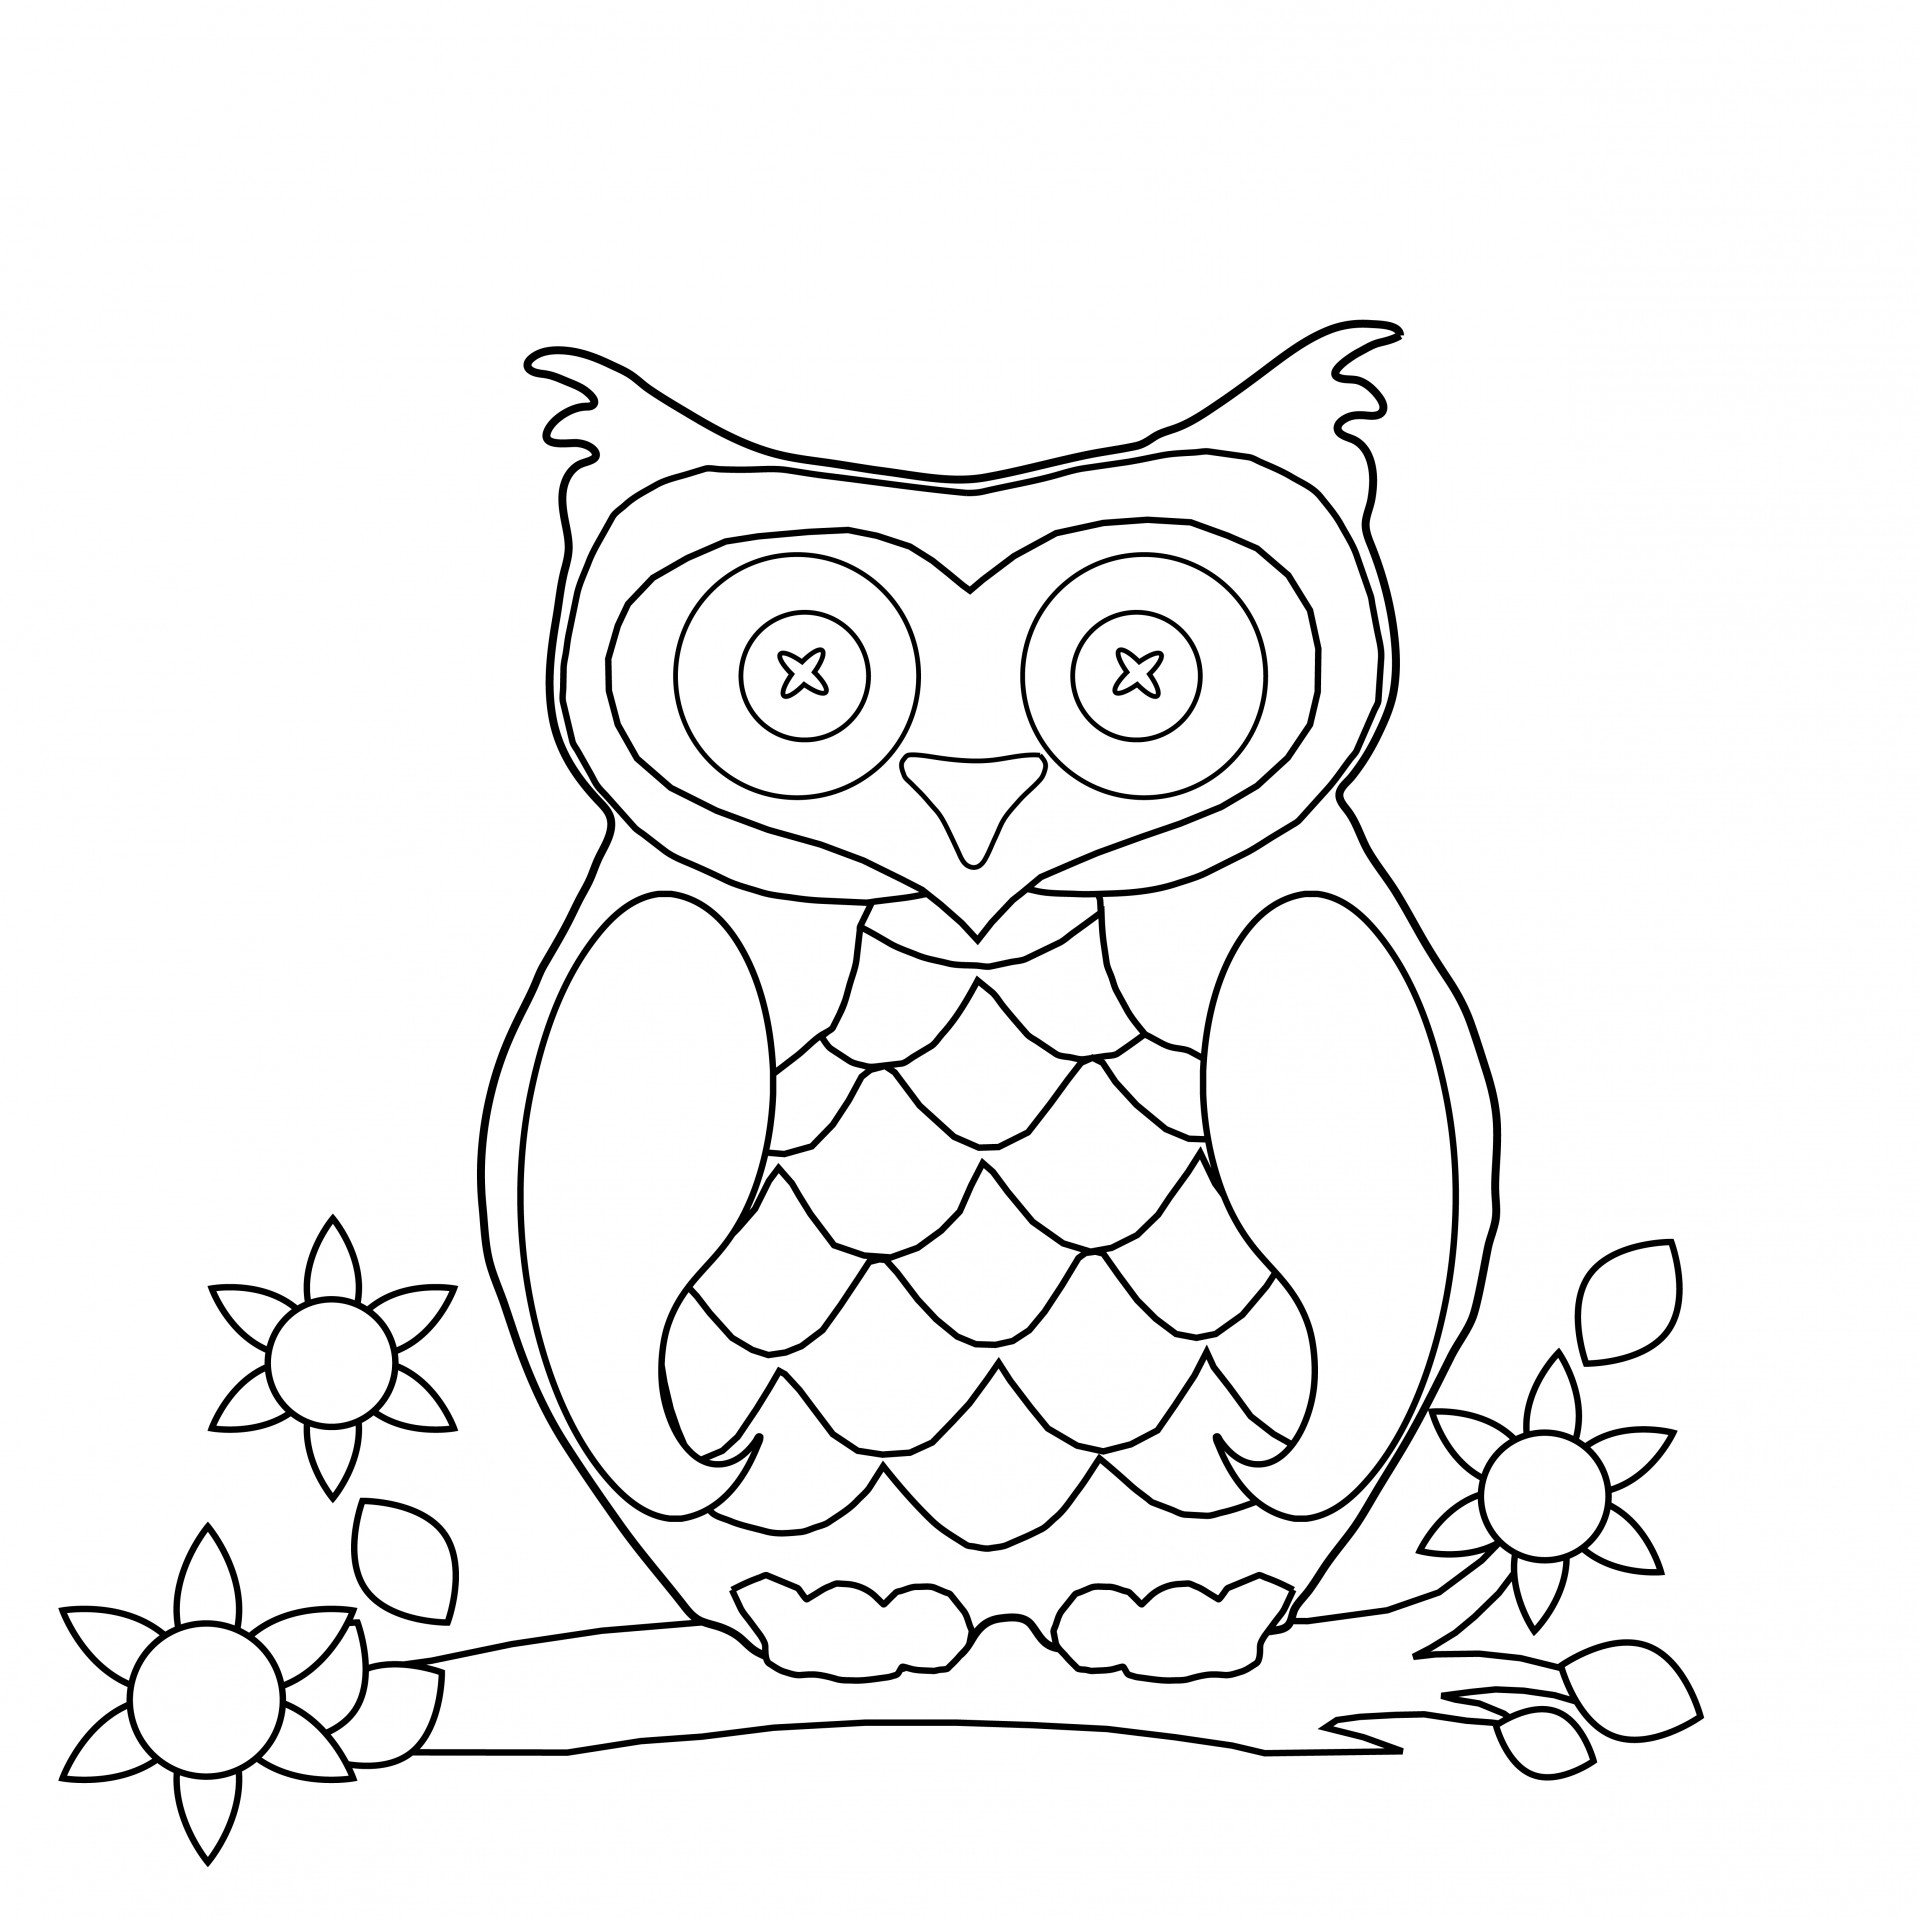 free coloring pages with designs floral coloring pages for adults best coloring pages for with coloring designs free pages